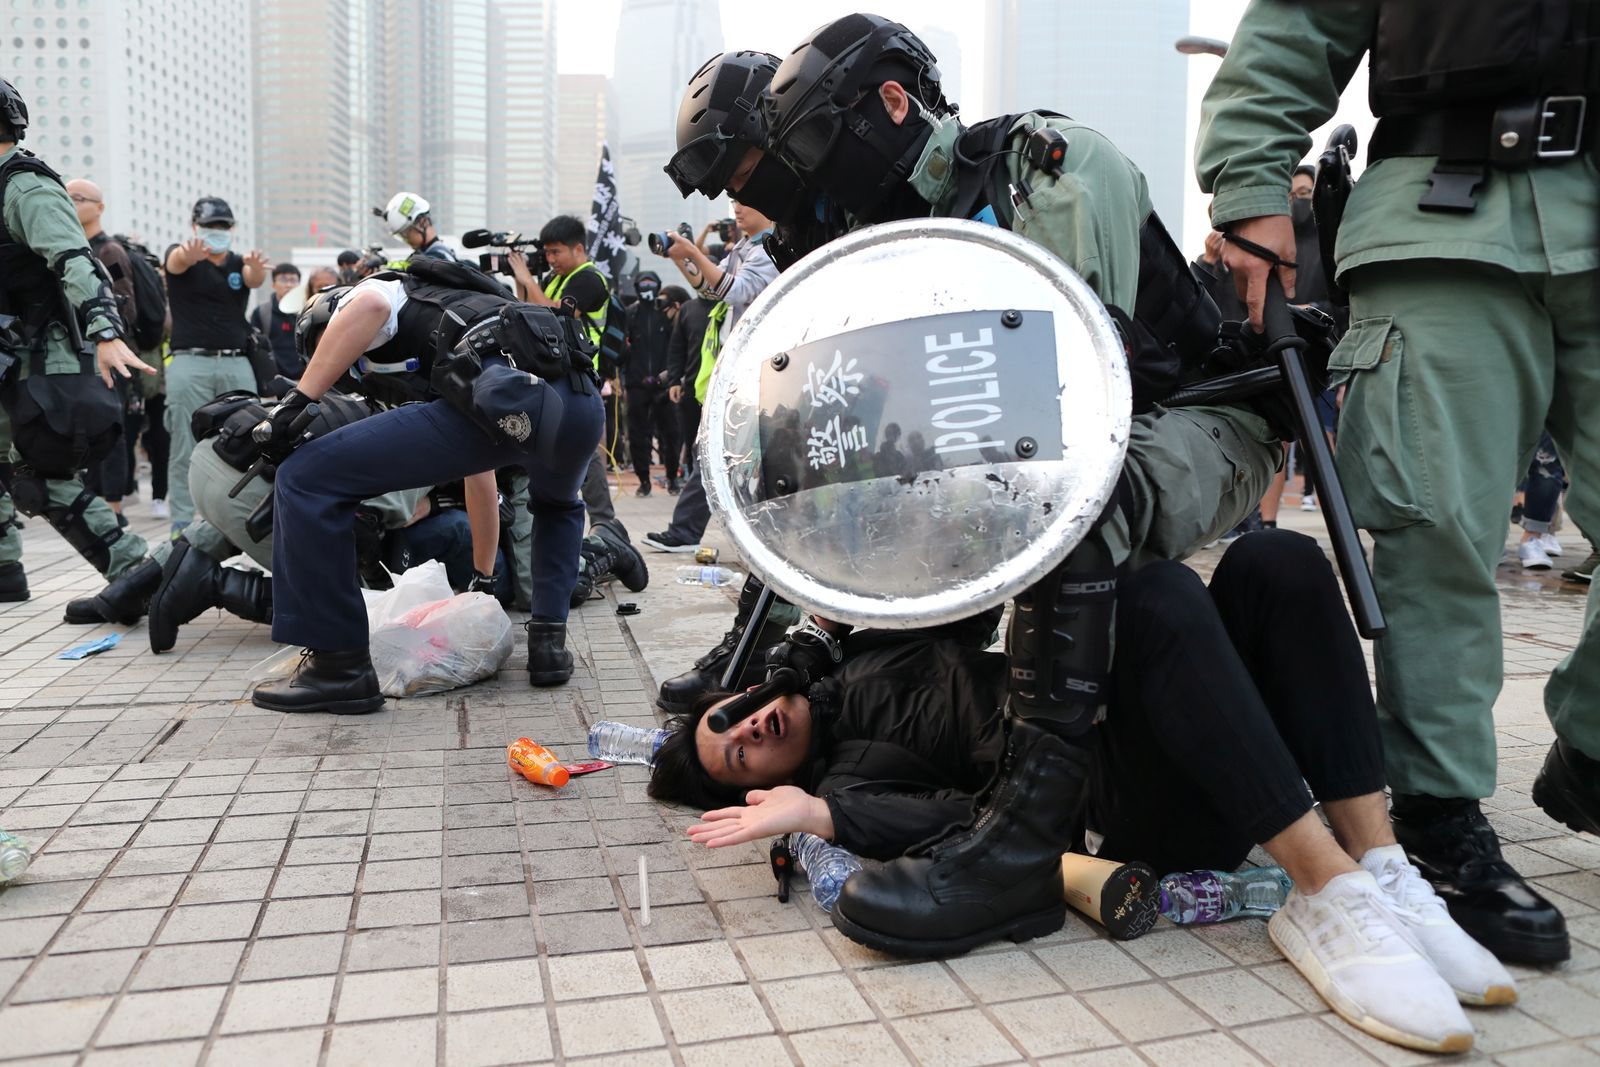 Police arrest a Hong Kong protester after a Chinese flag was removed from a flag pole at a rally in support of Xinjiang Uighurs' human rights in Hong Kong